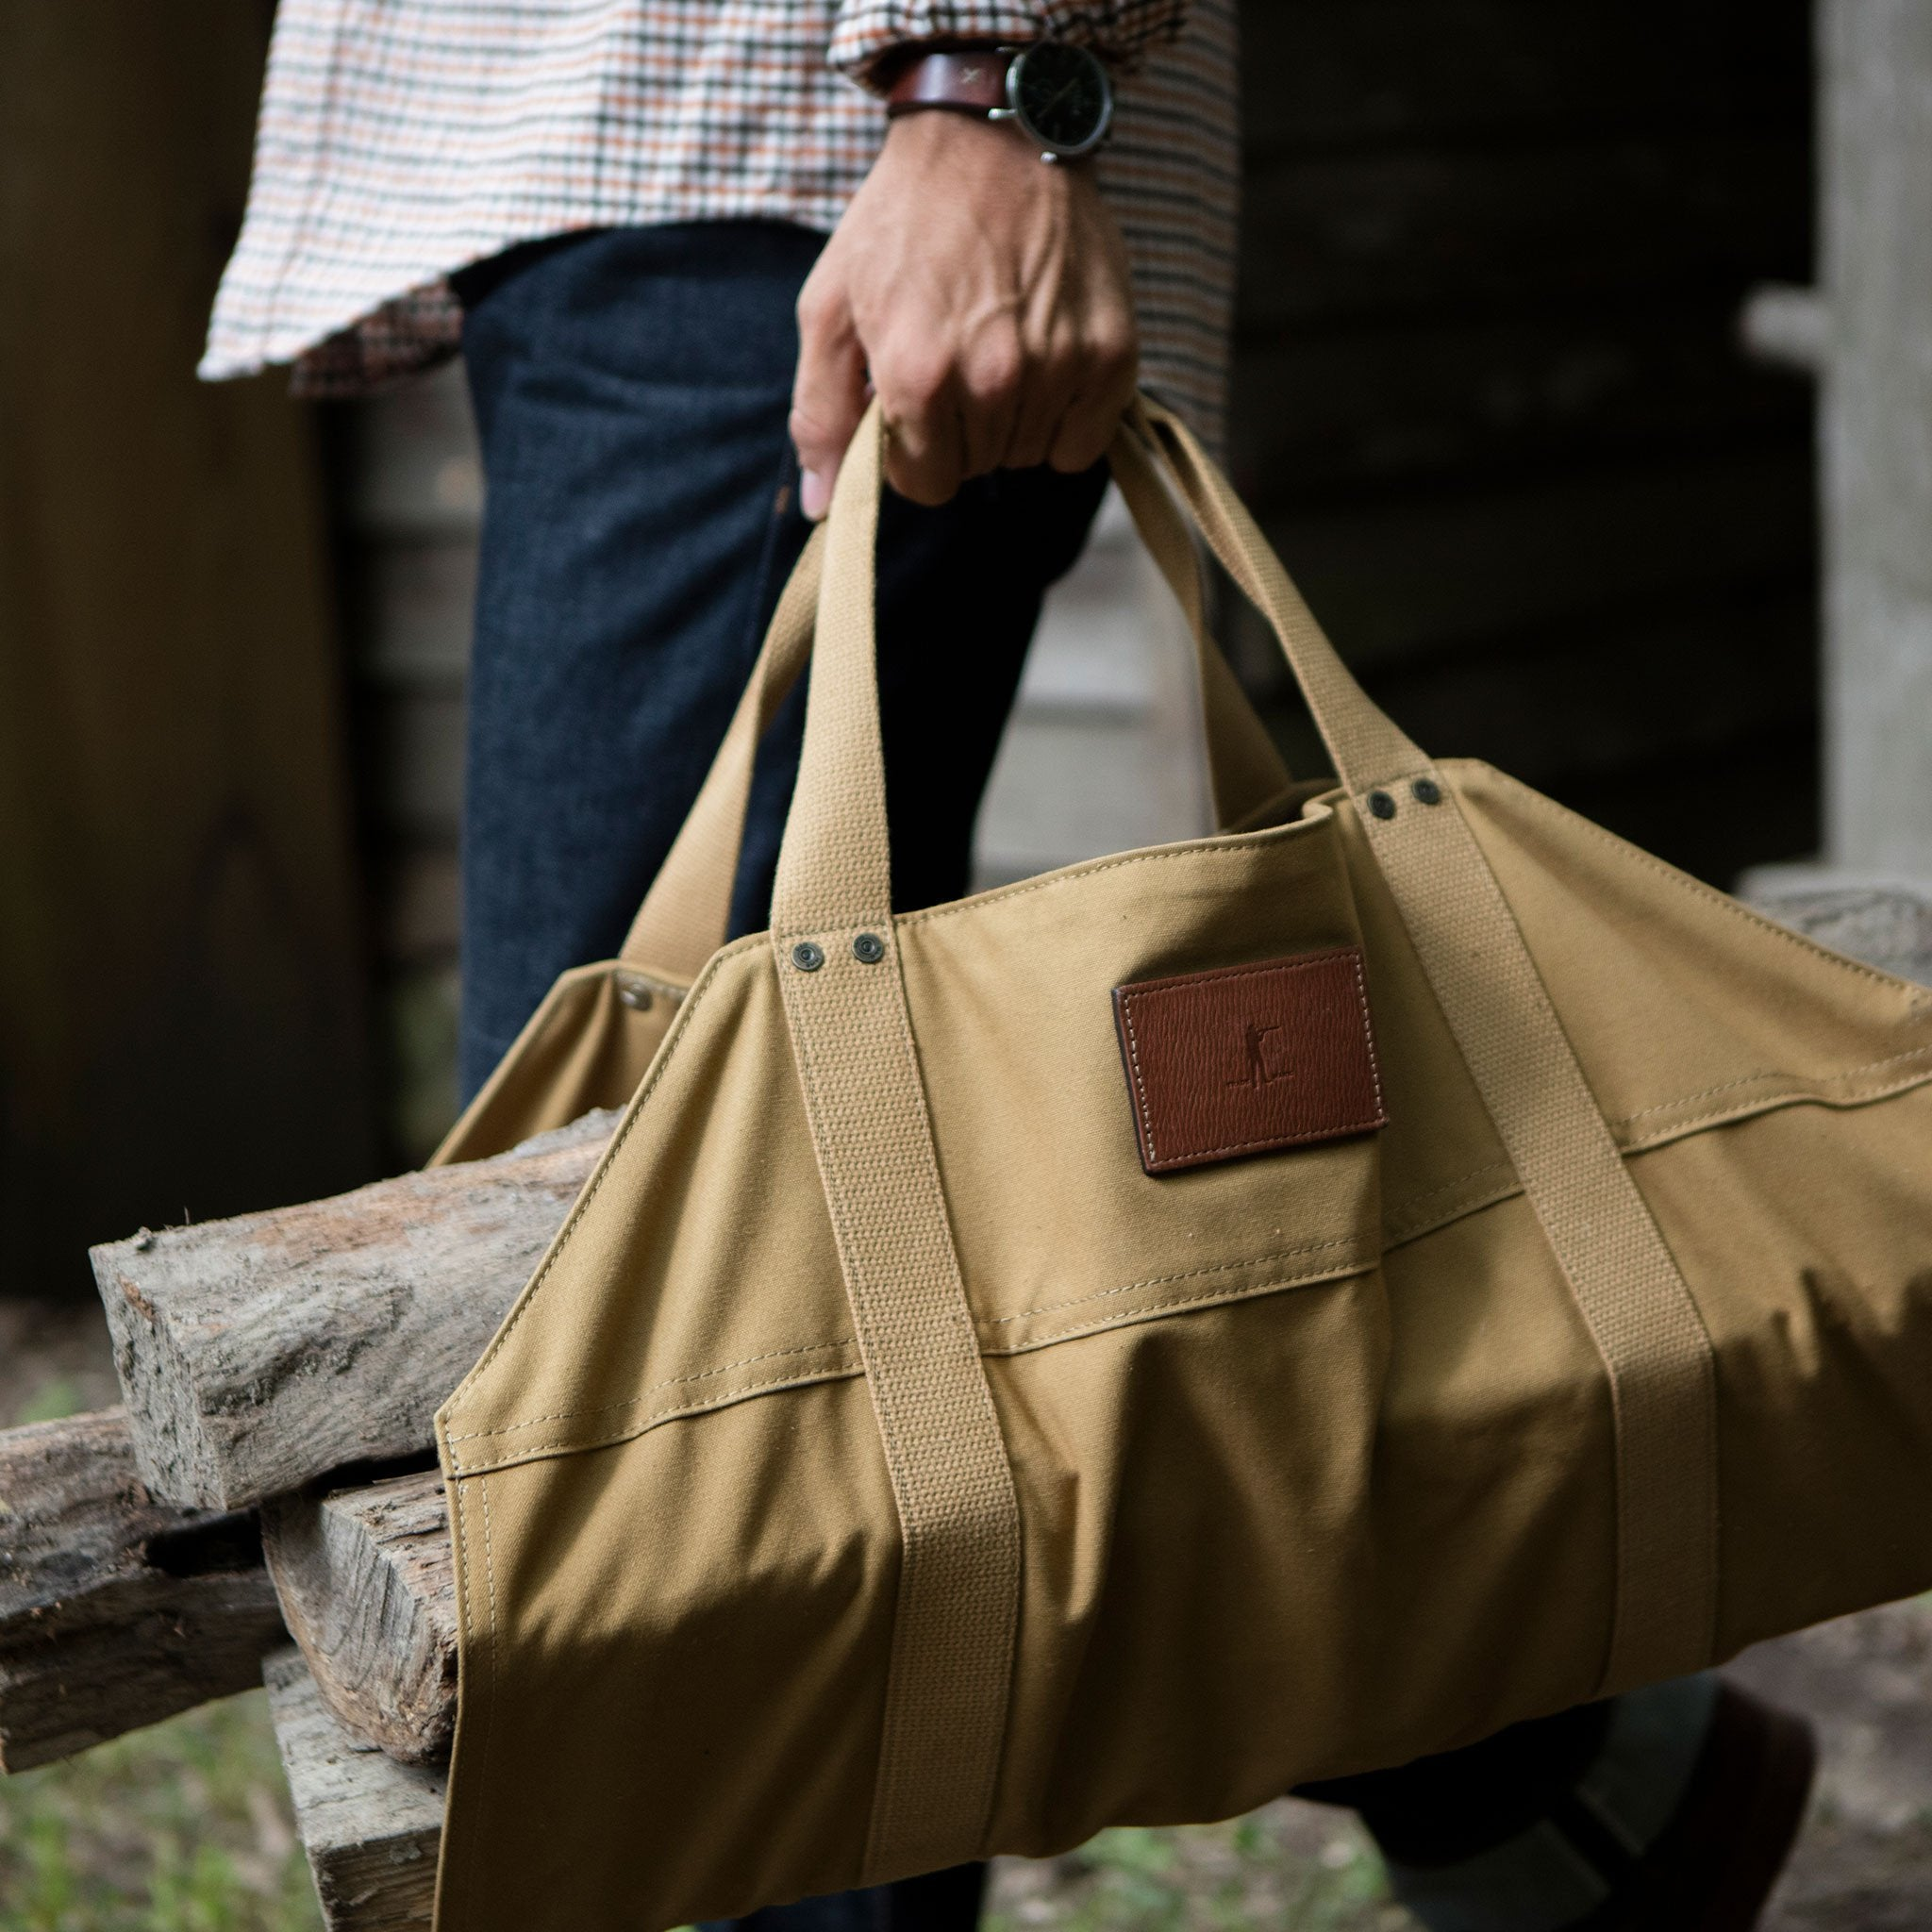 The Firewood Carrier, Signature Canvas